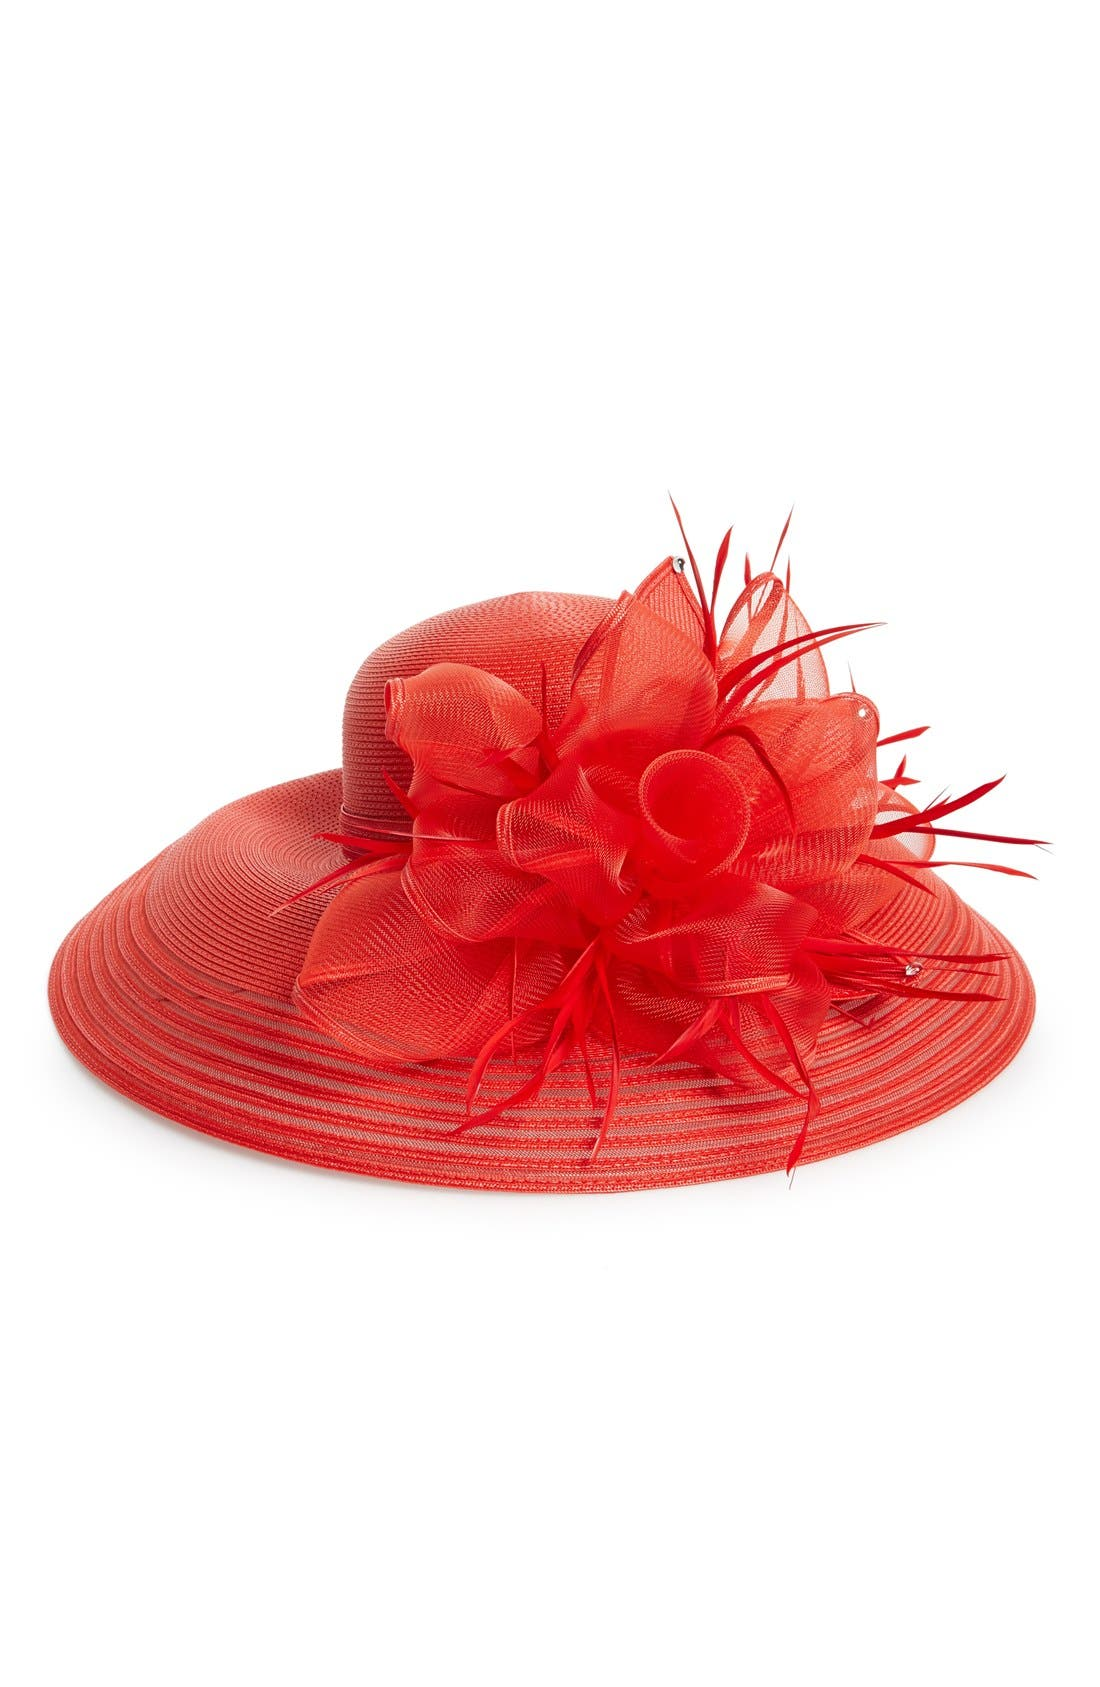 Crystal Embellished Floral Hat,                             Main thumbnail 1, color,                             Red